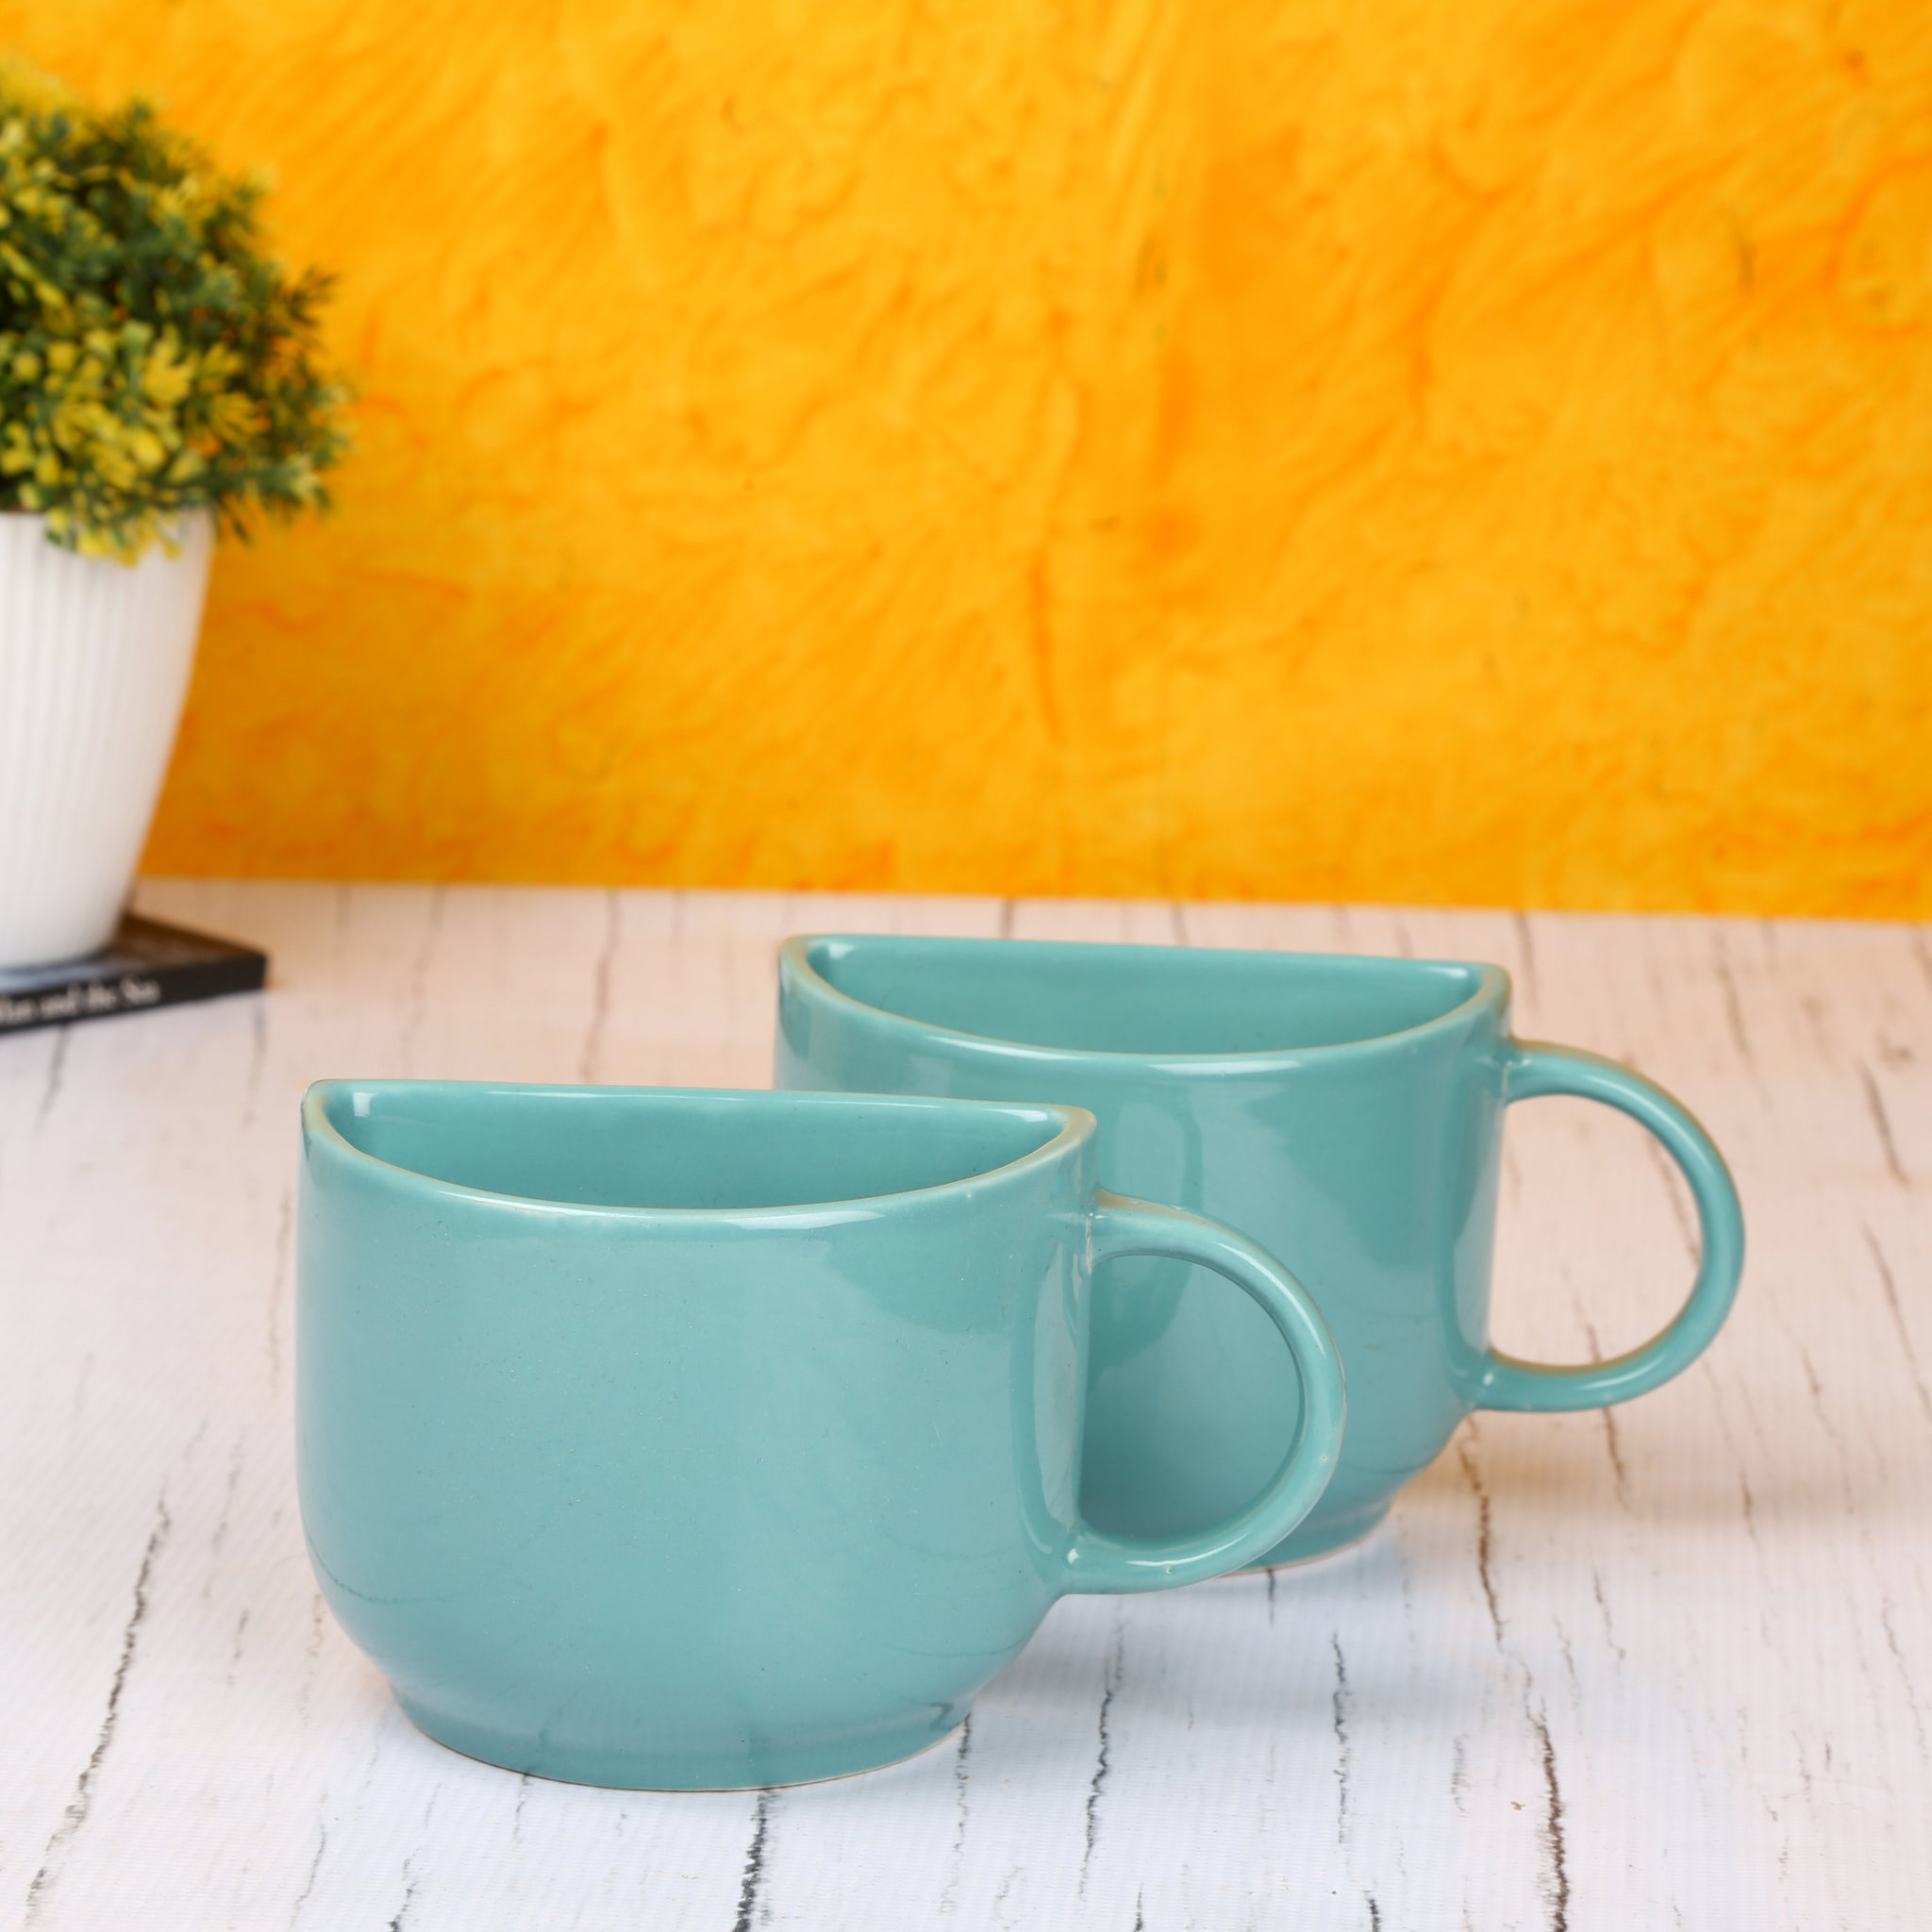 Ceramic Half Coffee Mugs With Wooden Serving Tray